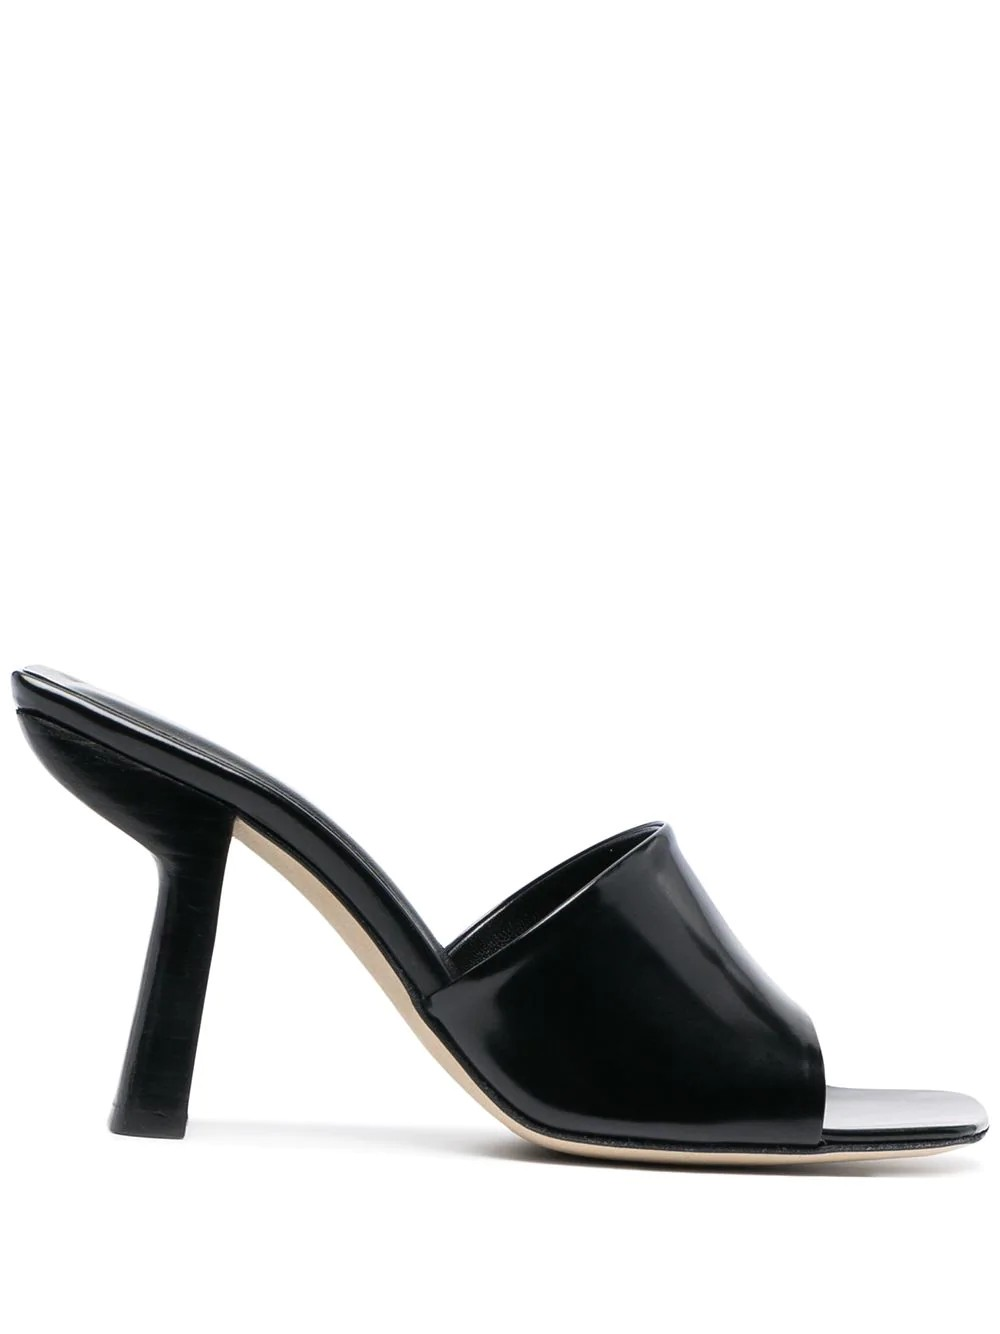 Liliana Black Semi Patent Leather